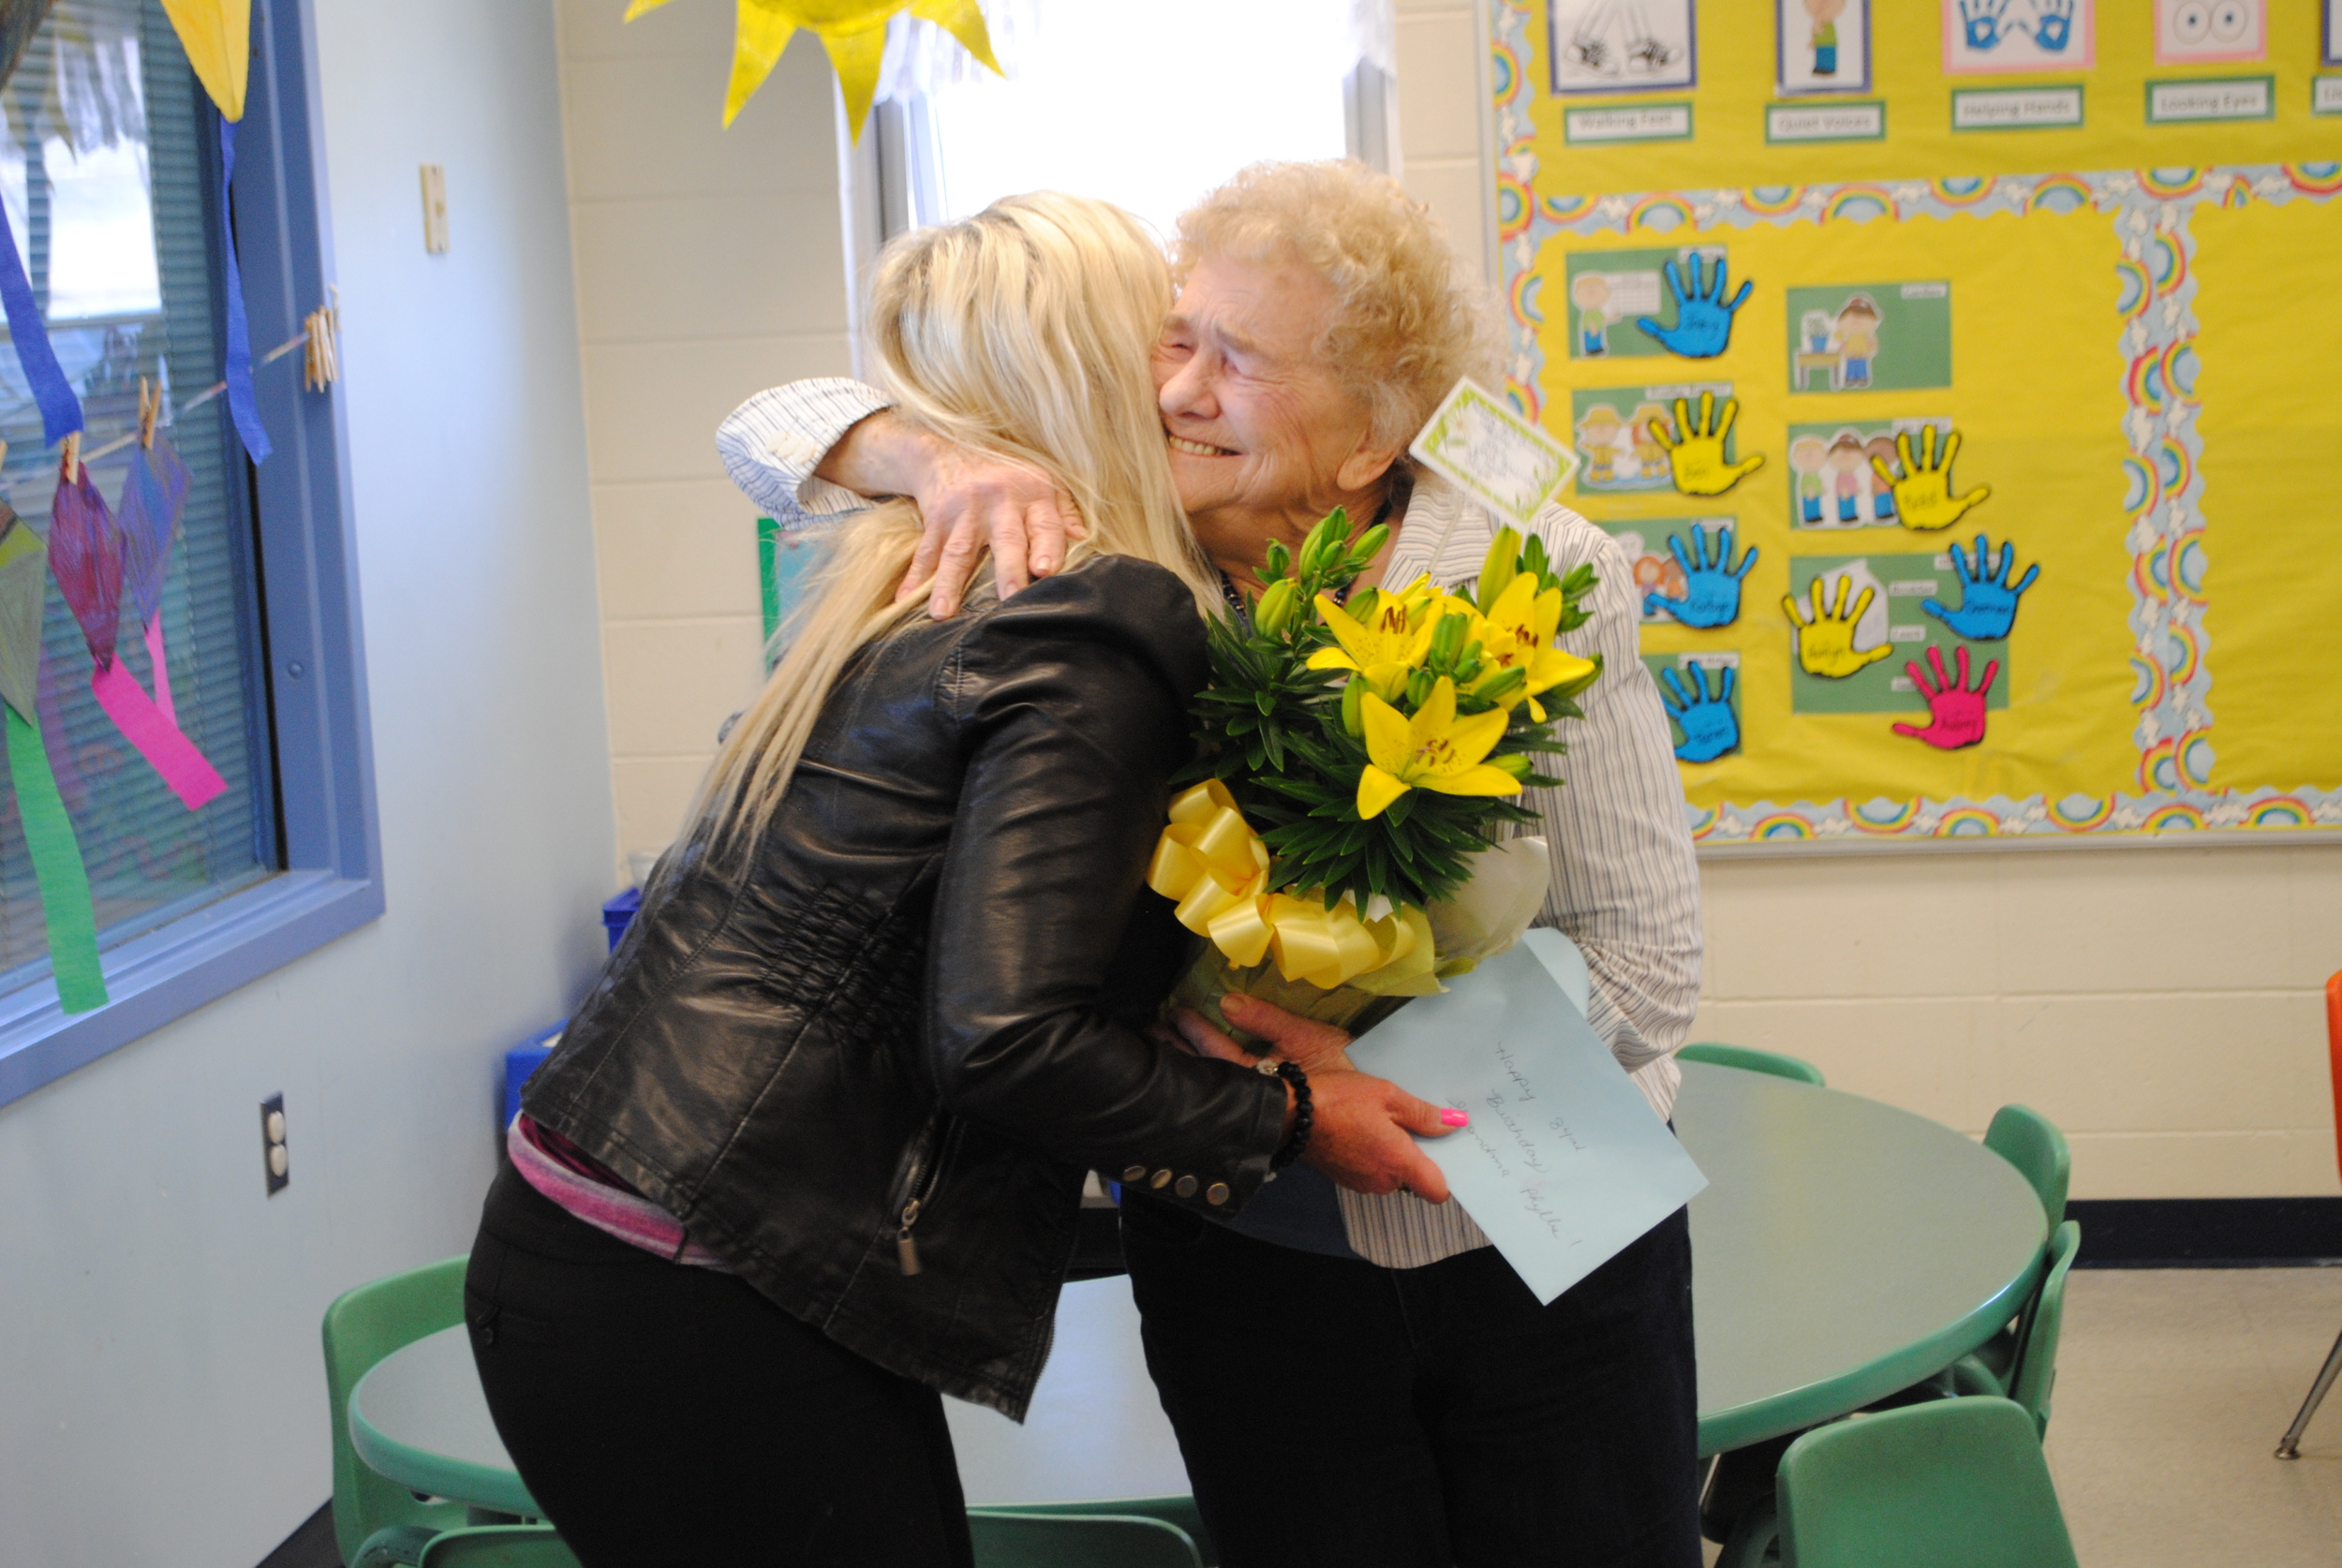 Phyllis Jackson, right, gives Kids Club Director, Tracy Dreger, a big hug after she received a beautiful day lily and birthday card from staff on Thursday.